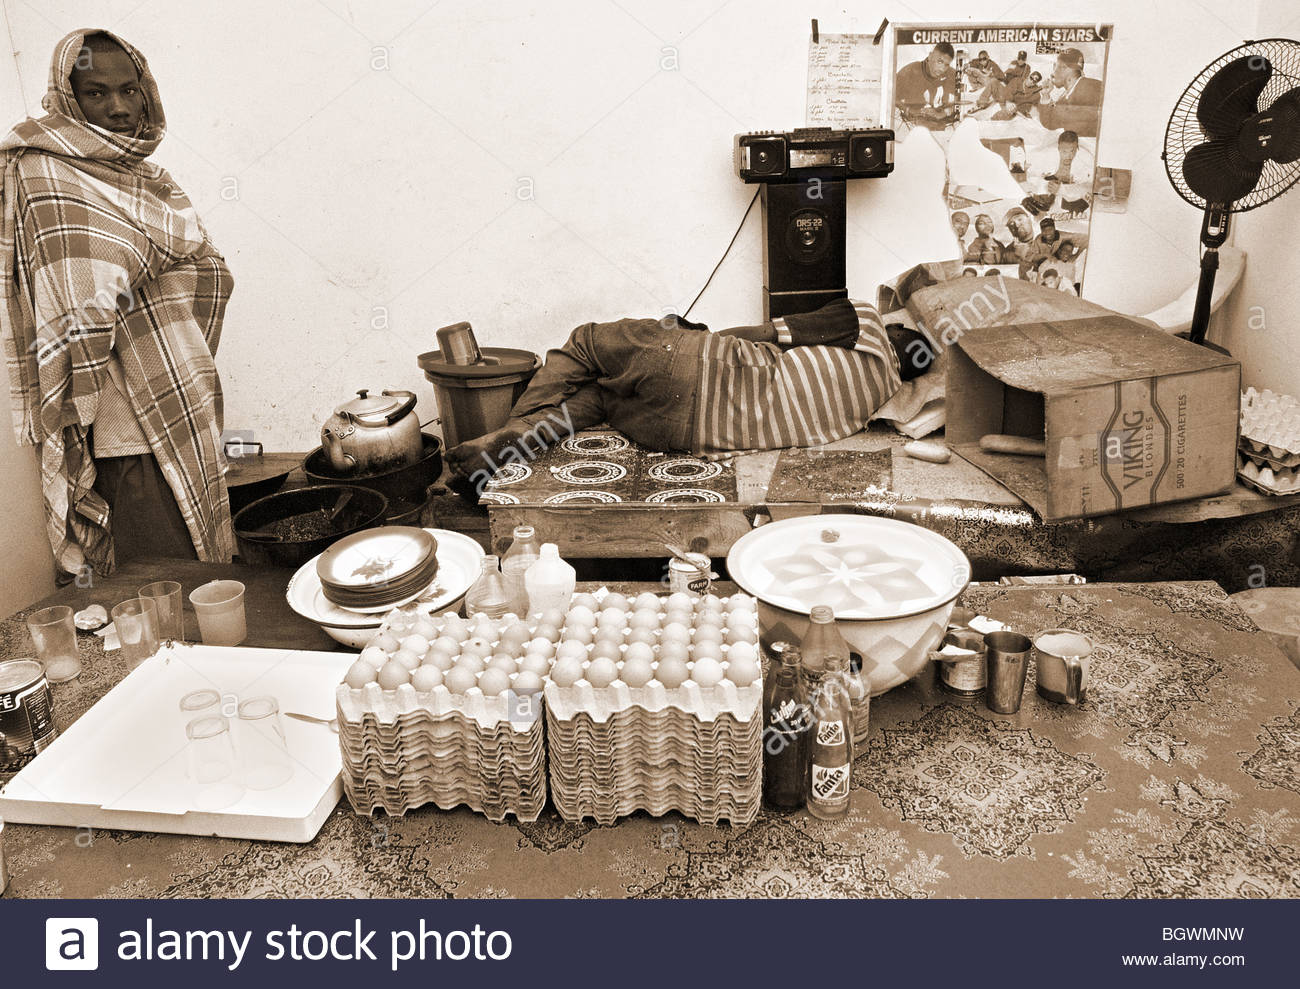 FOOD Mauritania North Africa Cafe restaurant SLEEPING CHEF COOK filthy eggs 2000 - Stock Image